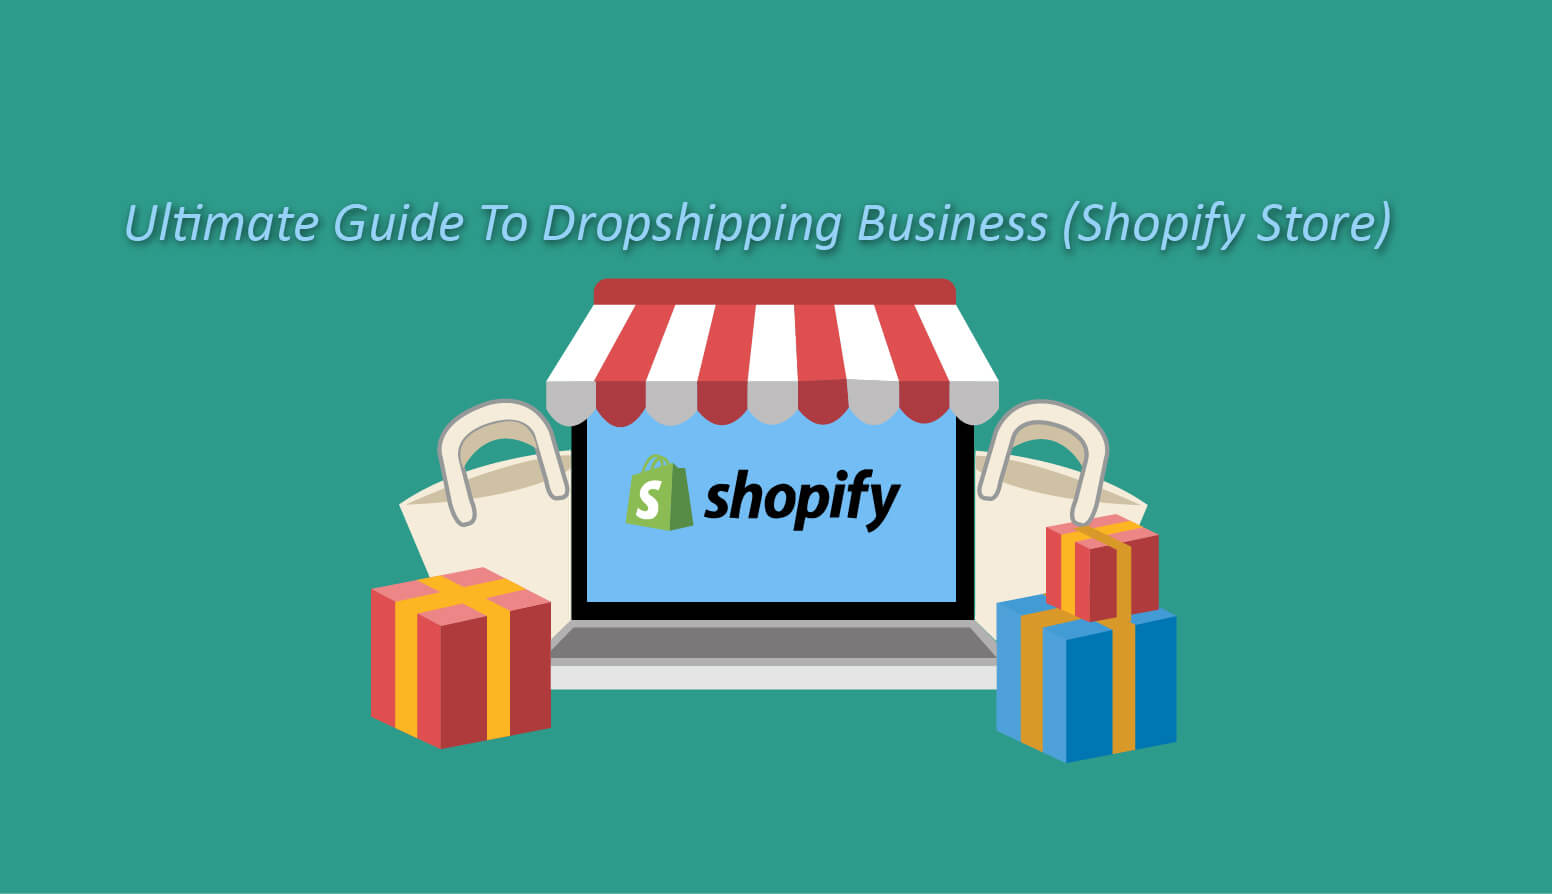 Ultimate Guide To Drop Shipping Business (Shopify Store)